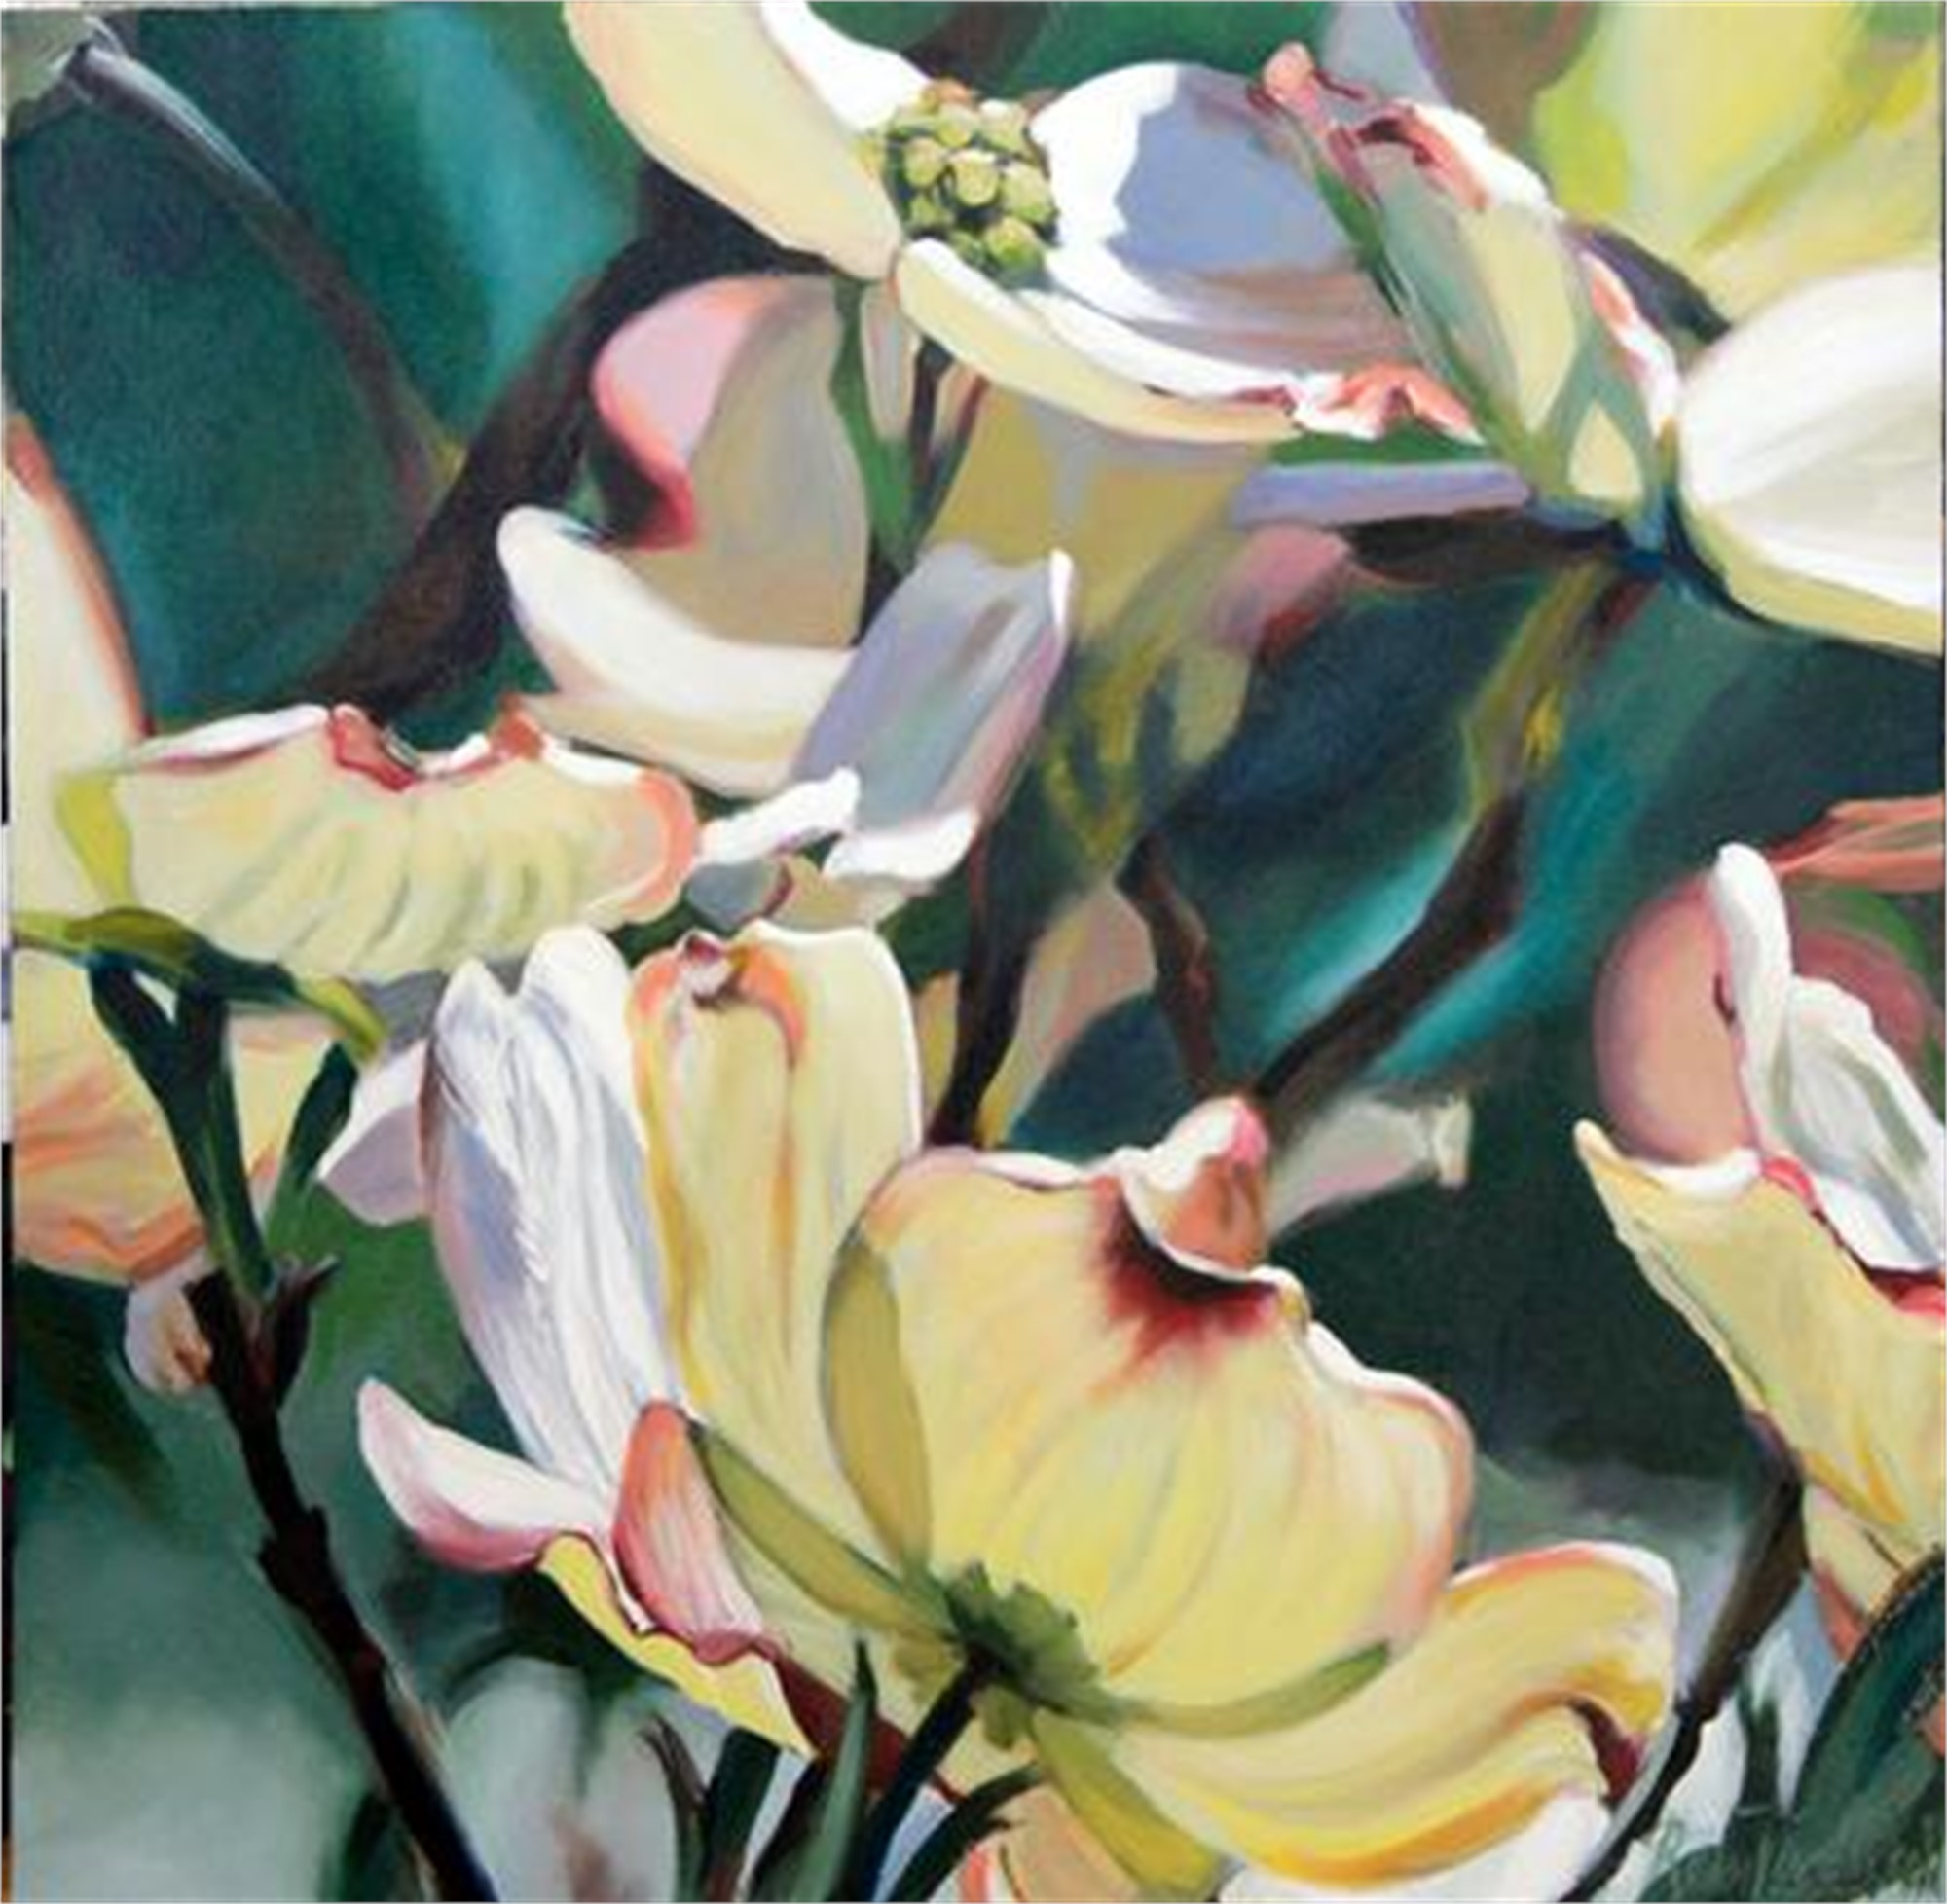 Translucent Dogwood by Rein Vanderhill